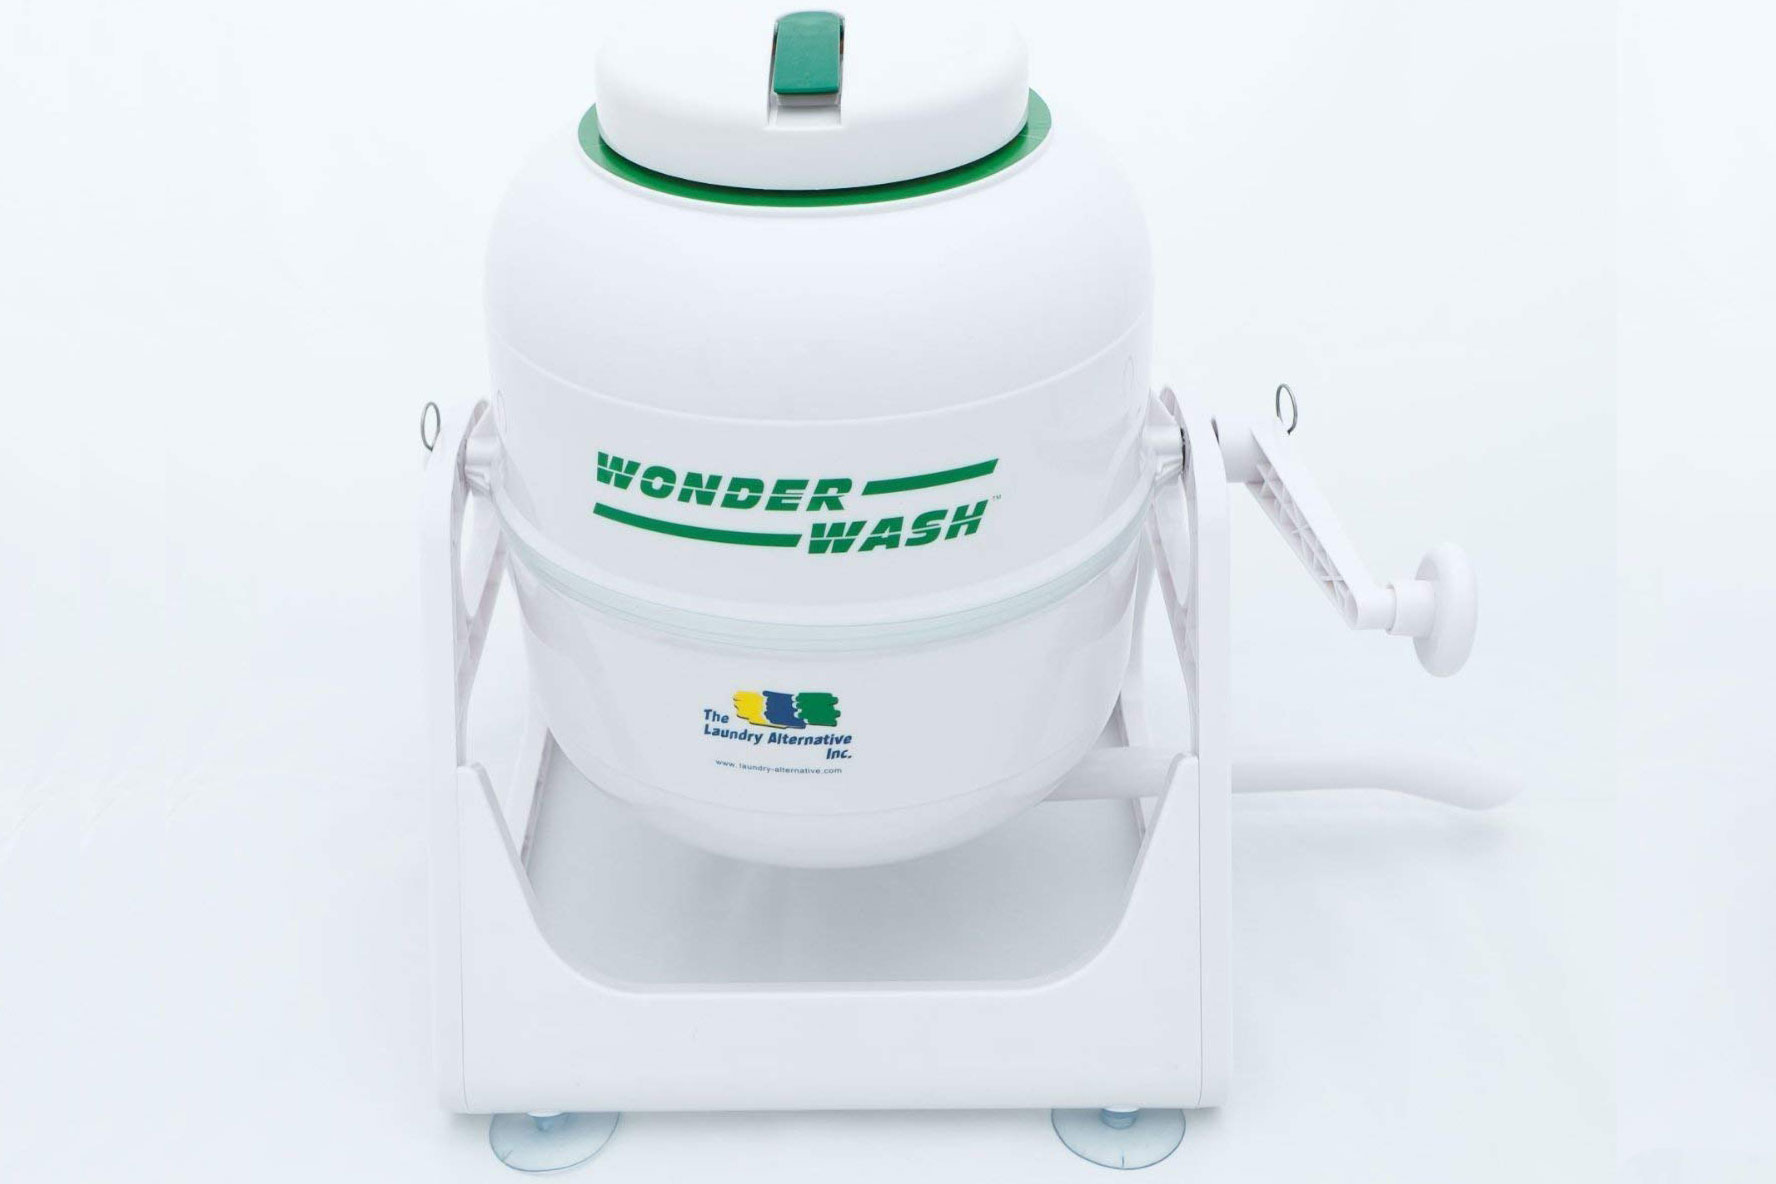 Wonder wash hand crank washer